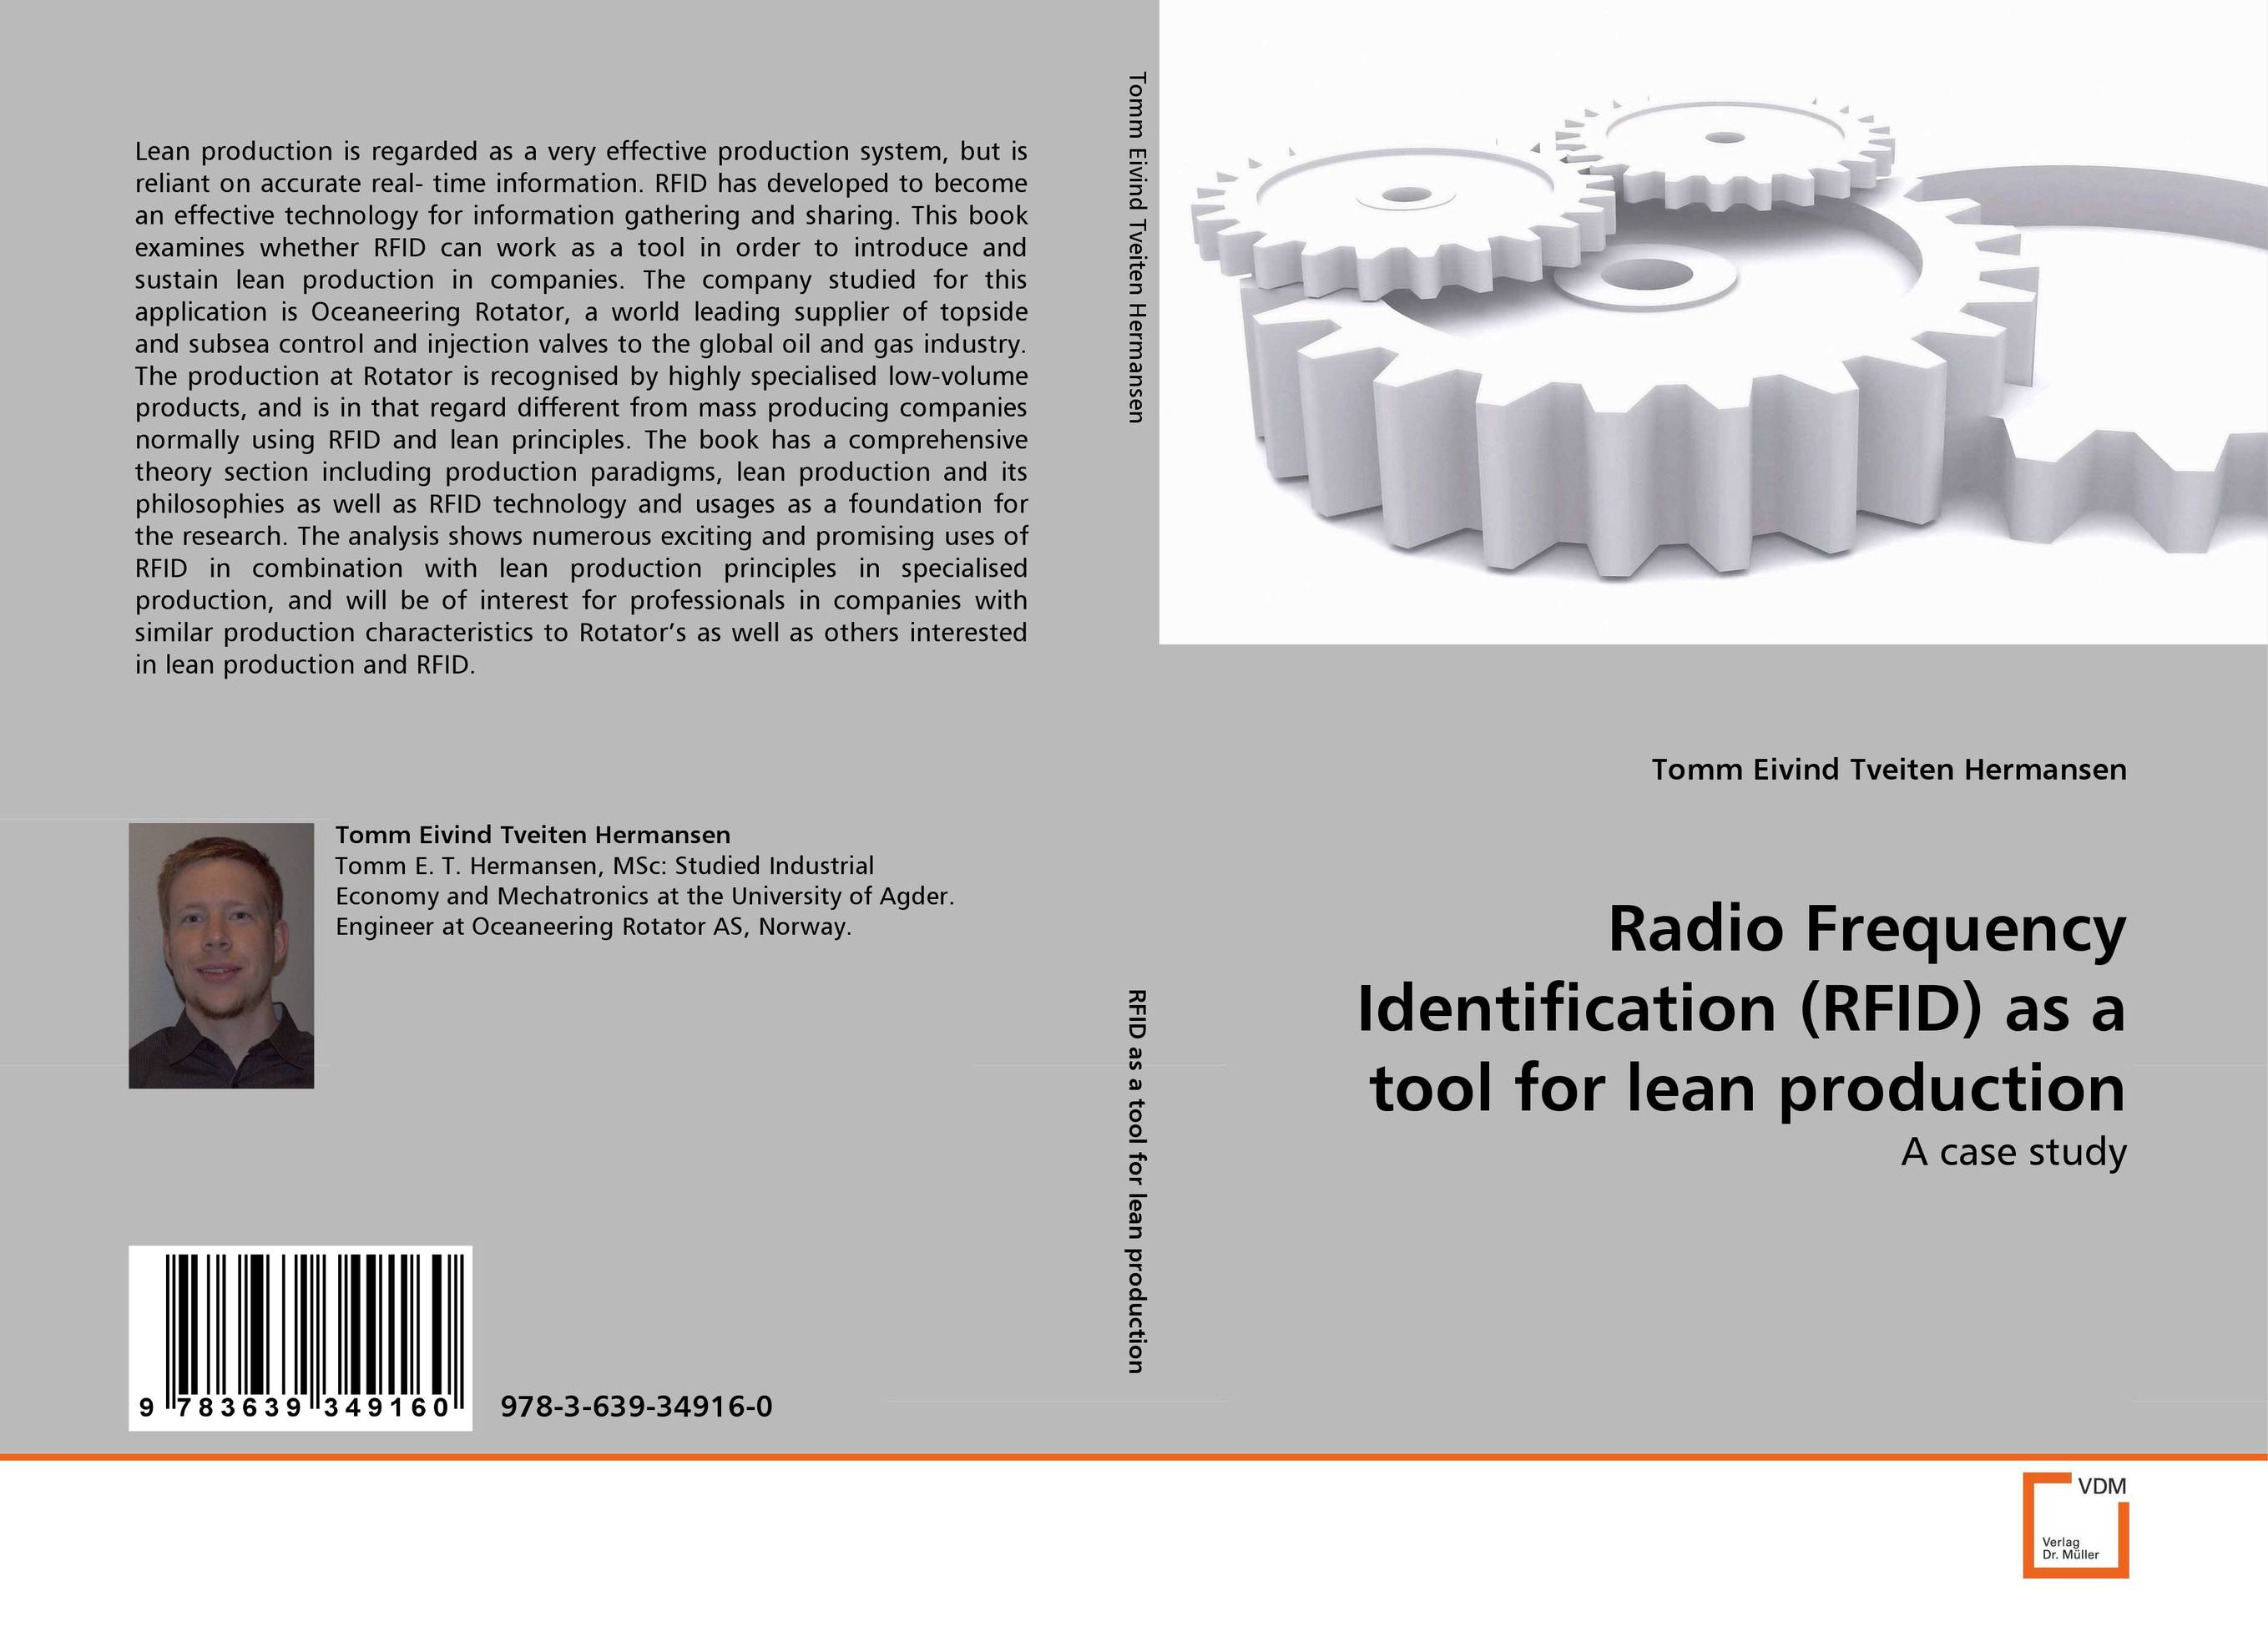 Radio Frequency Identification (RFID) as a tool for lean production facility location and the theory of production